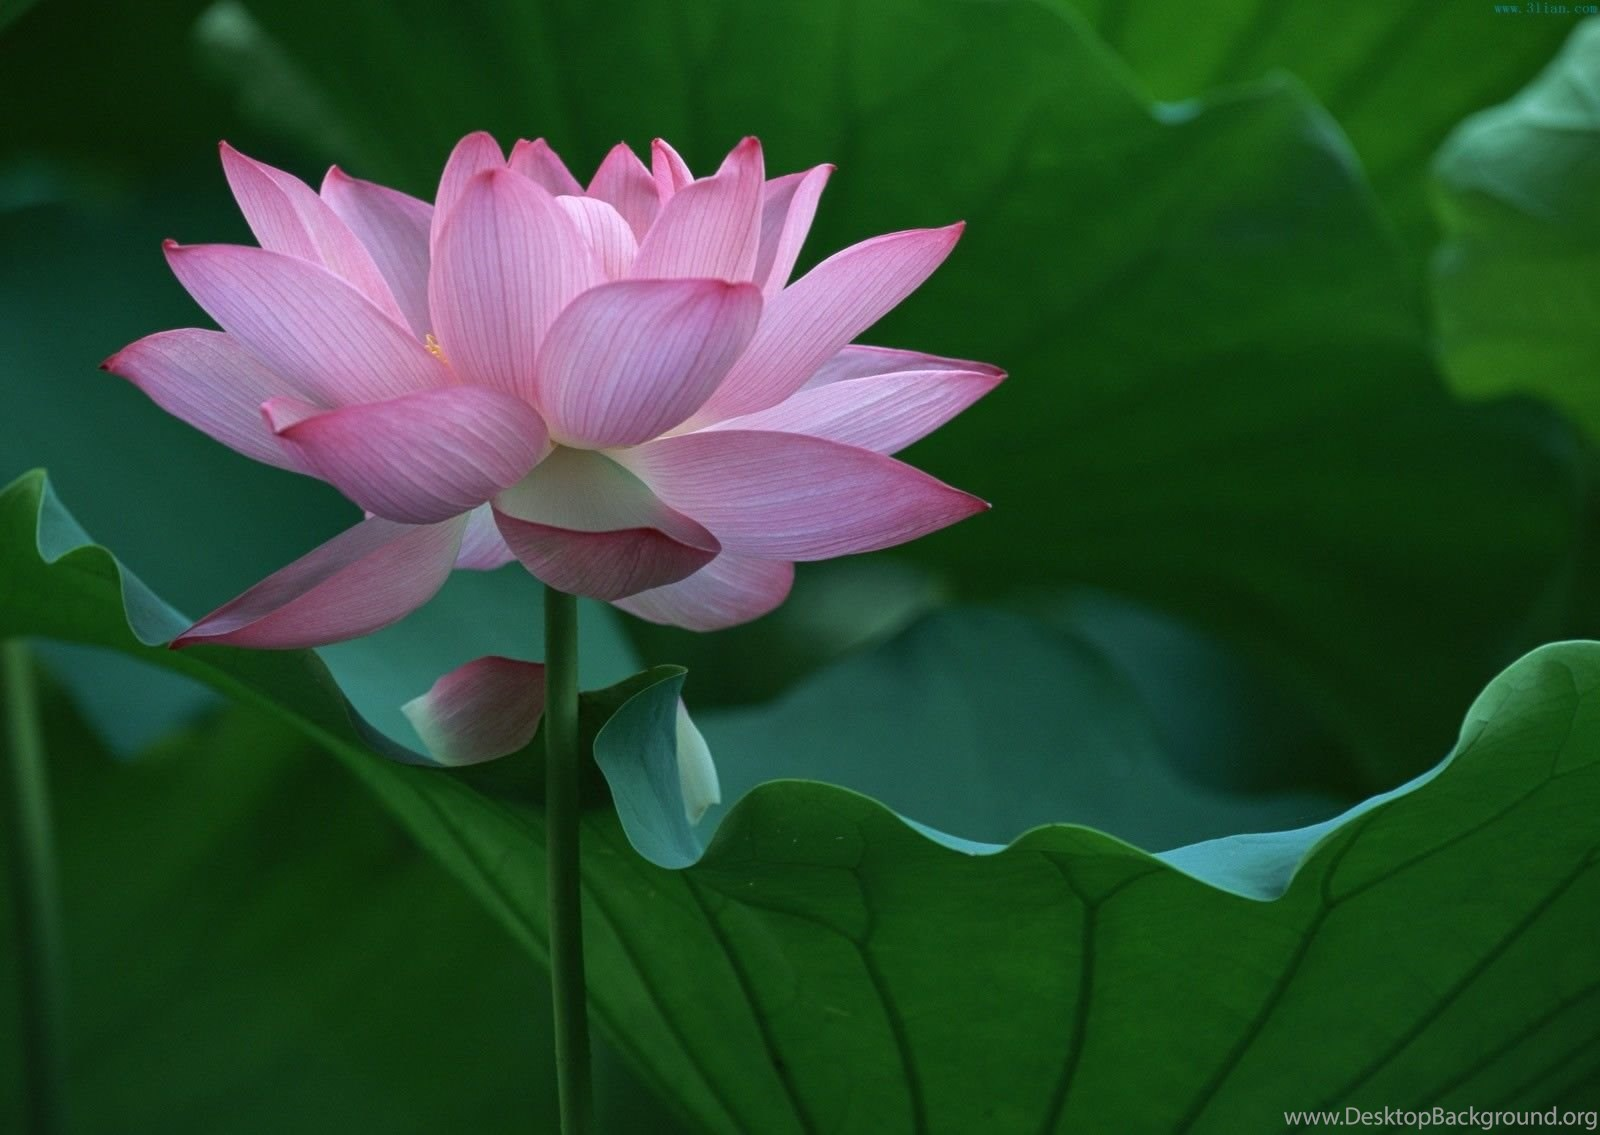 Pictures Of A Lotus Flower Hd Wallpapers Pretty Desktop Background